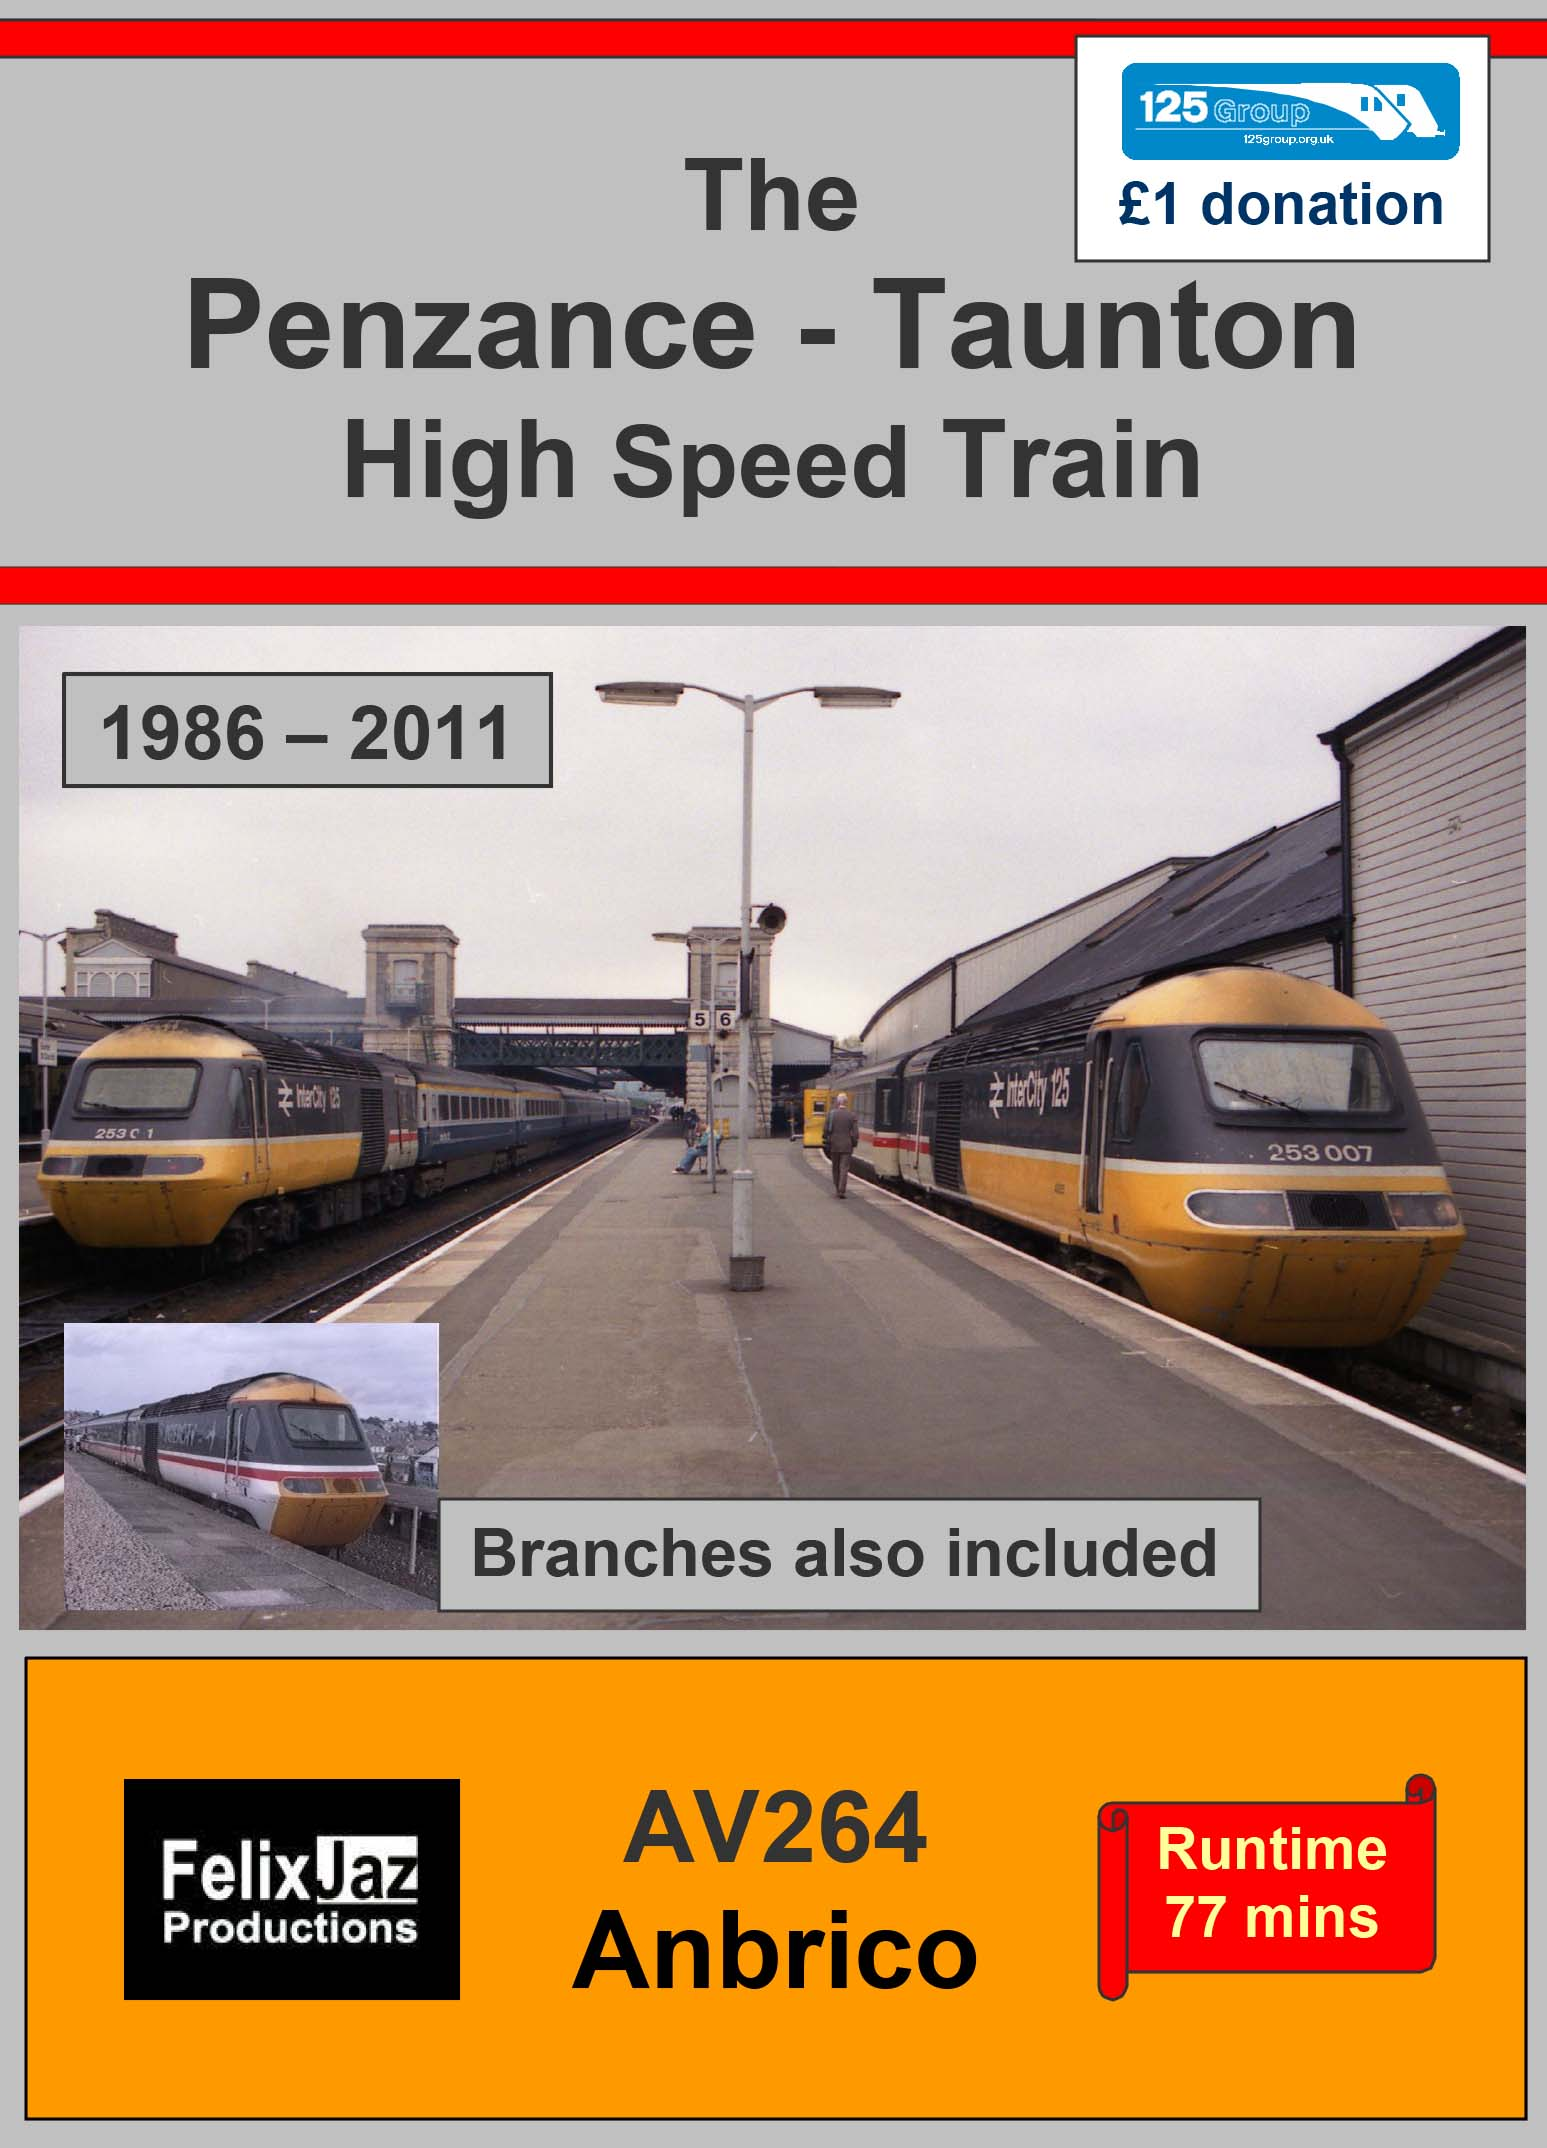 AV264 The Penzance to Taunton High Speed Train